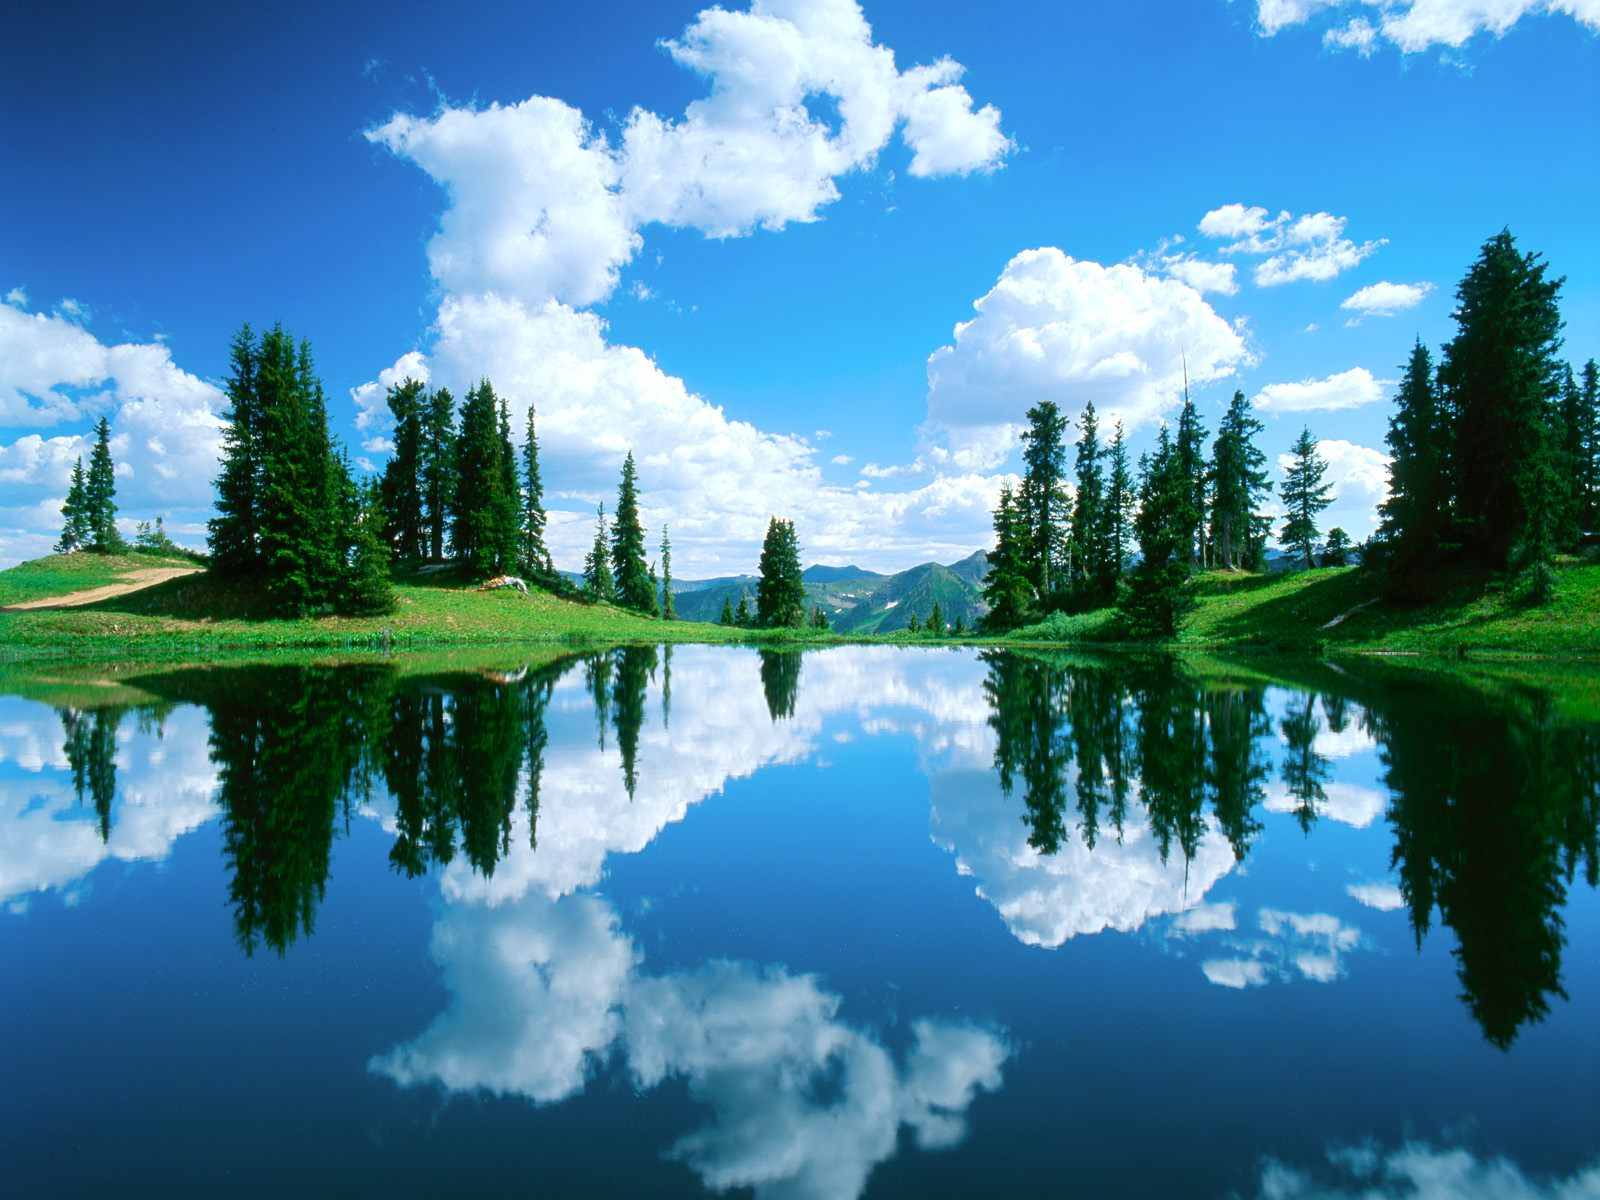 lakes hd wallpapers cool desktop images widescreen